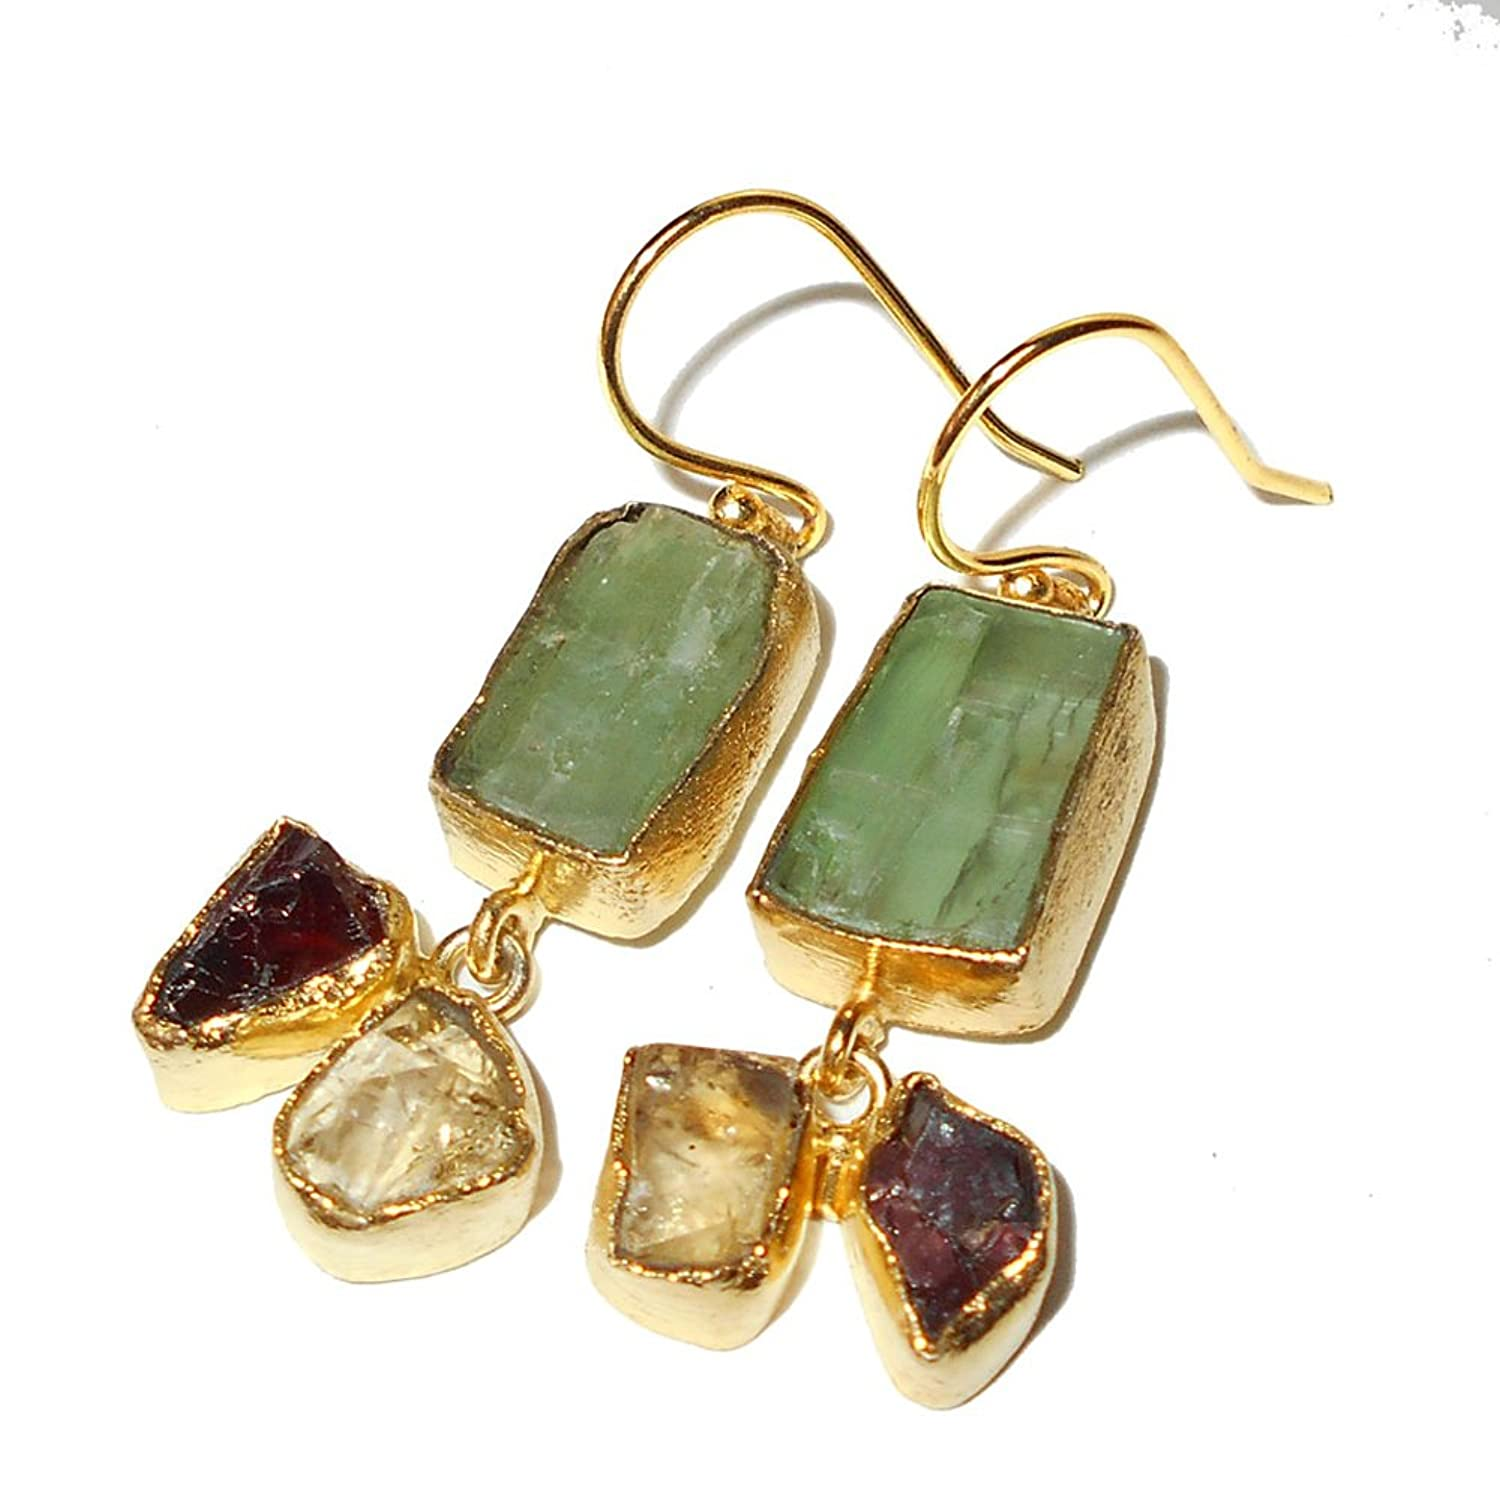 Green Kyanite, Citrine And Garnet Bezel Set Hook Earrings For Birthday Gift